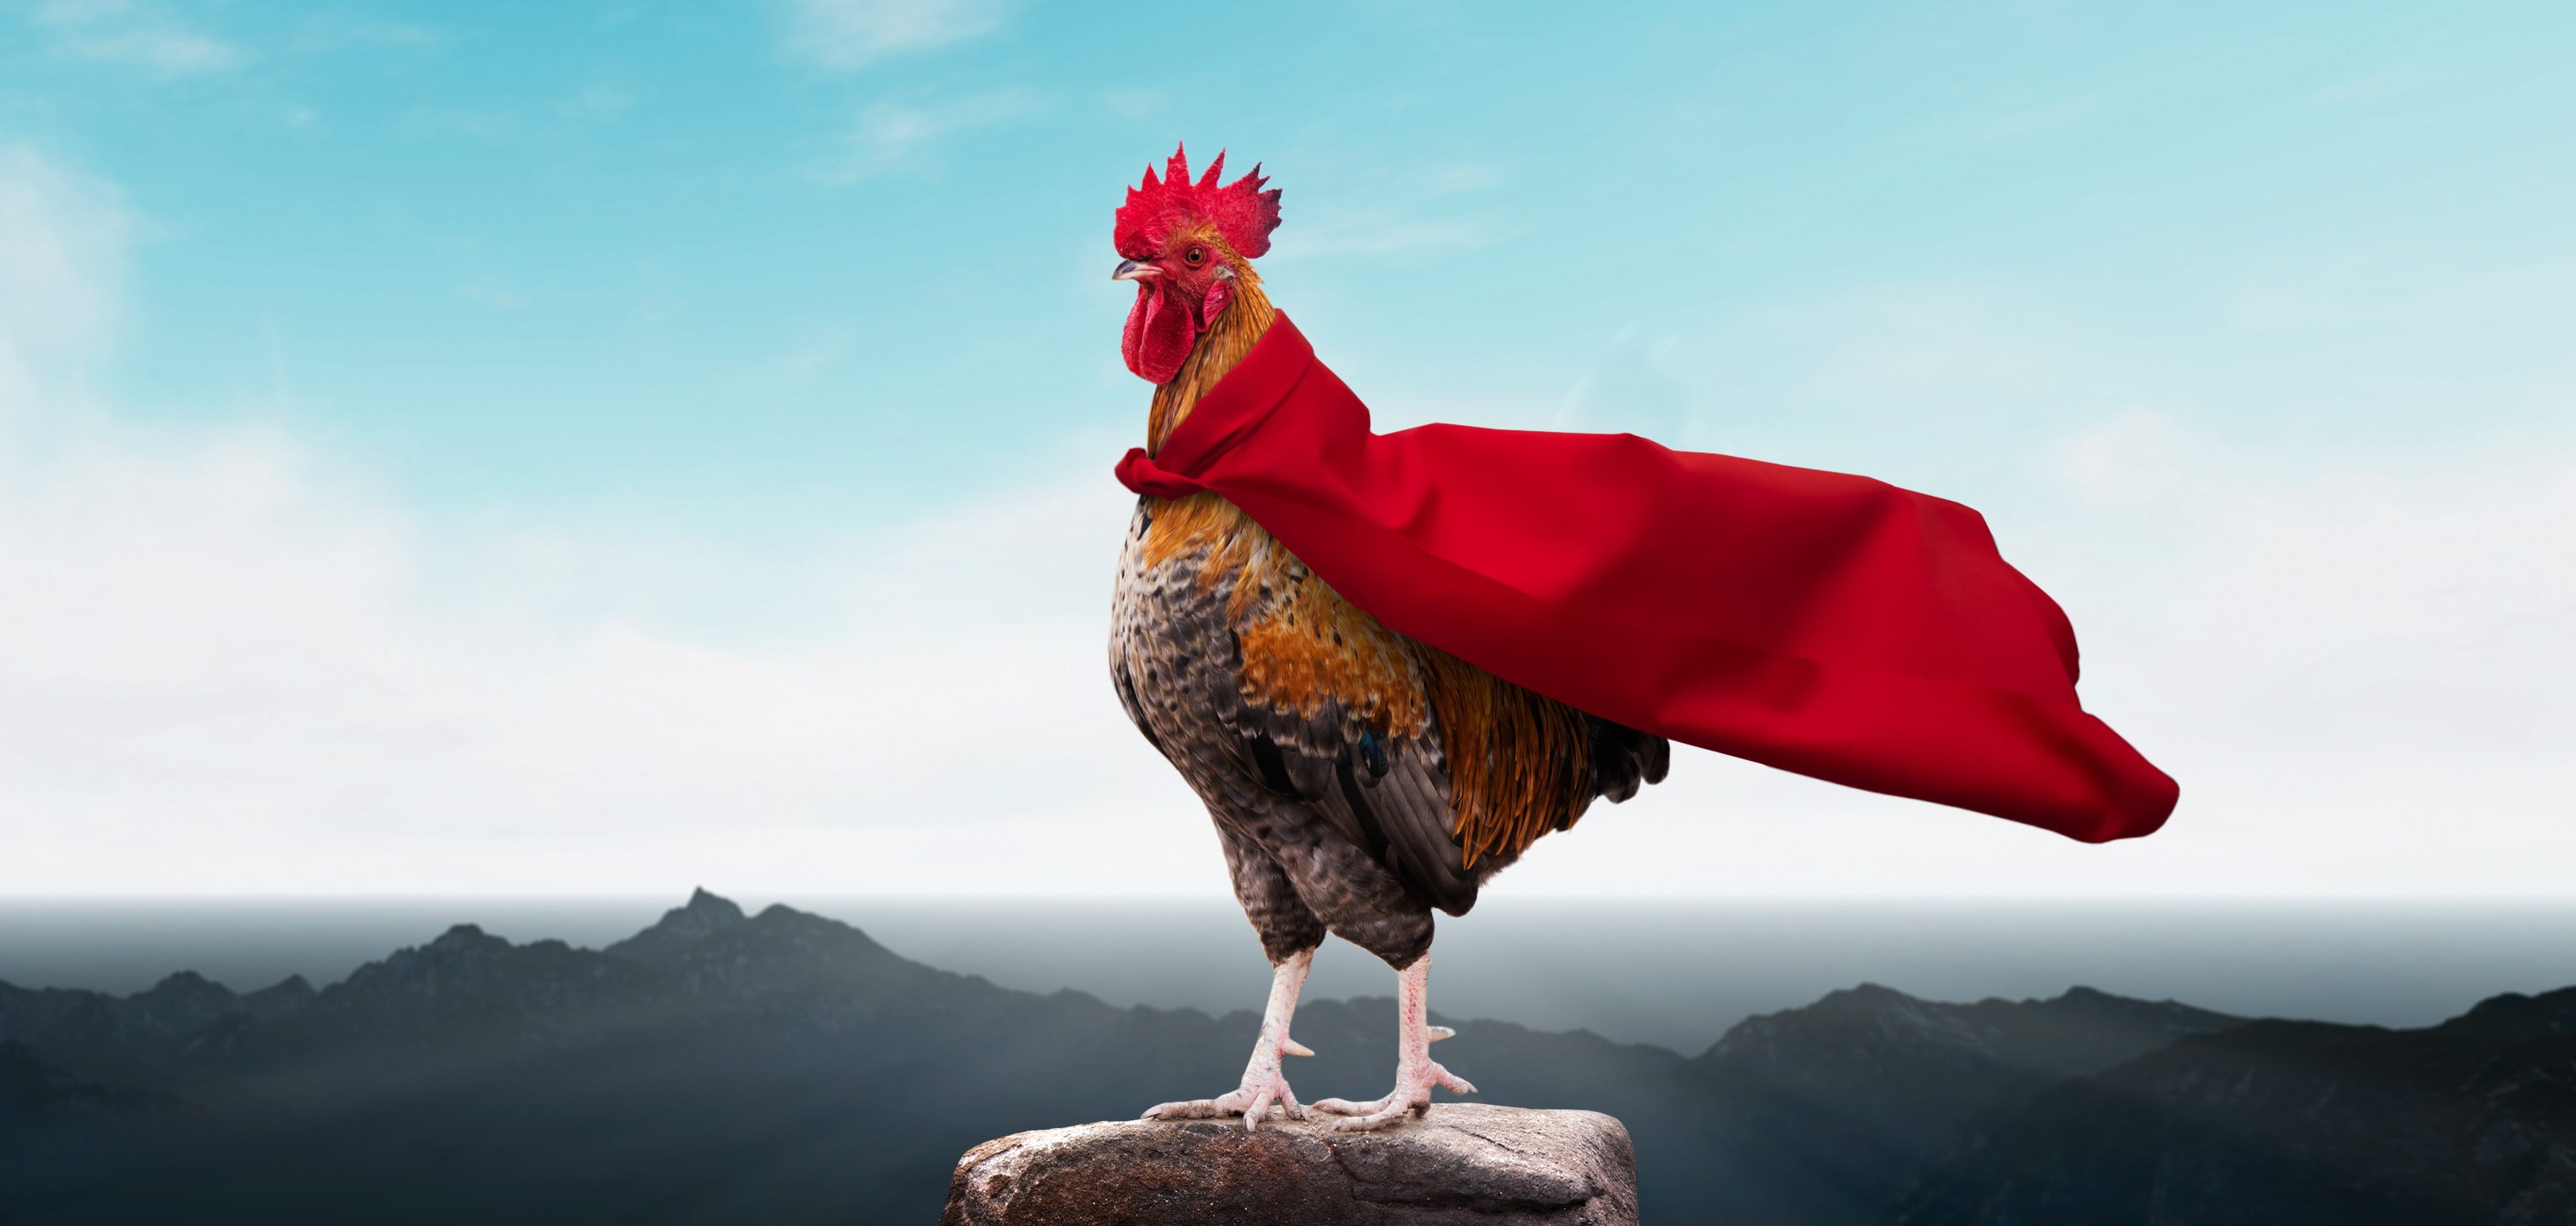 Chickens to the rescue!